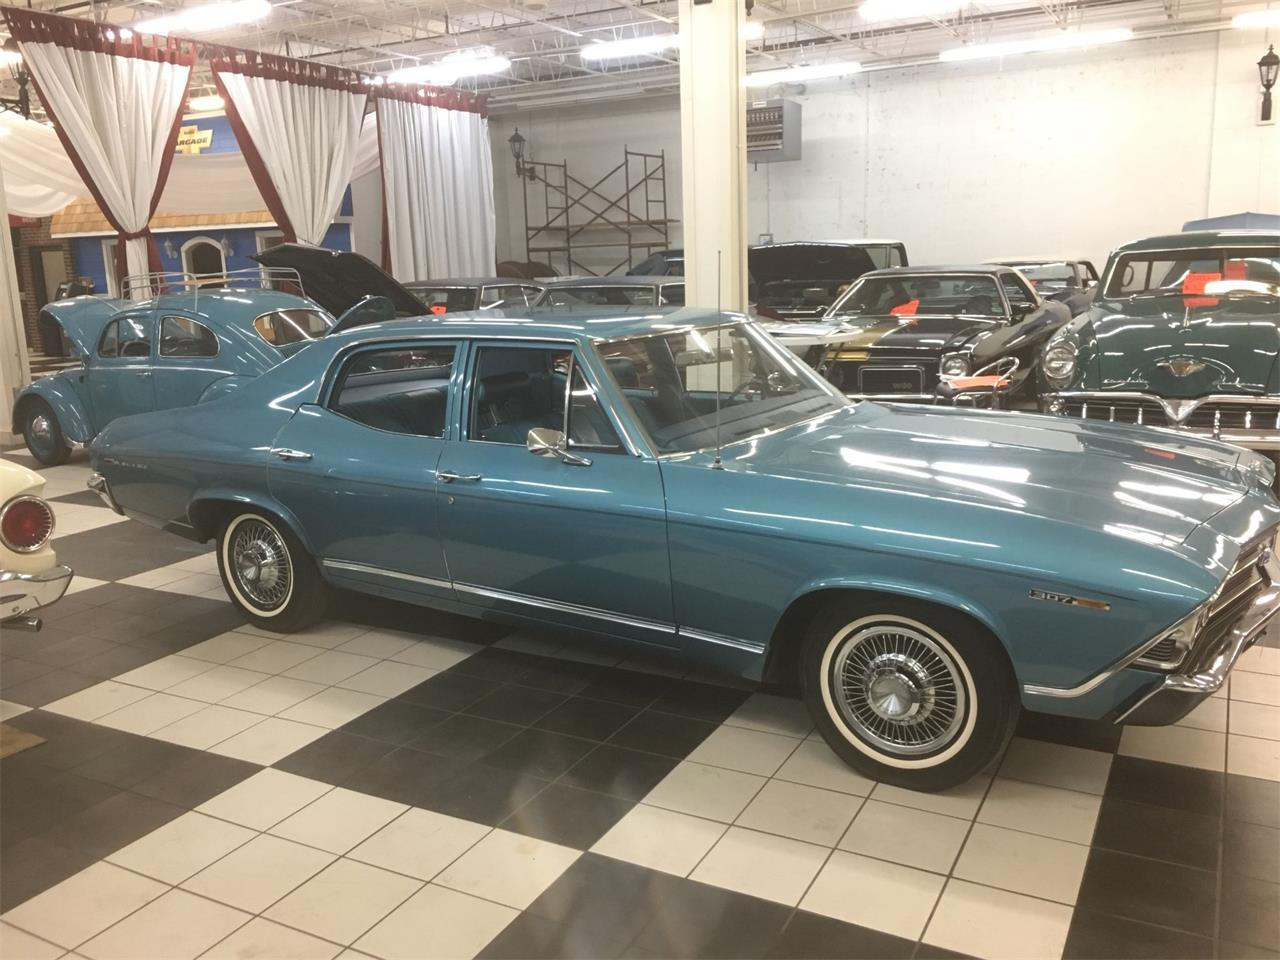 1969 Chevrolet Malibu (CC-1164009) for sale in Annandale, Minnesota